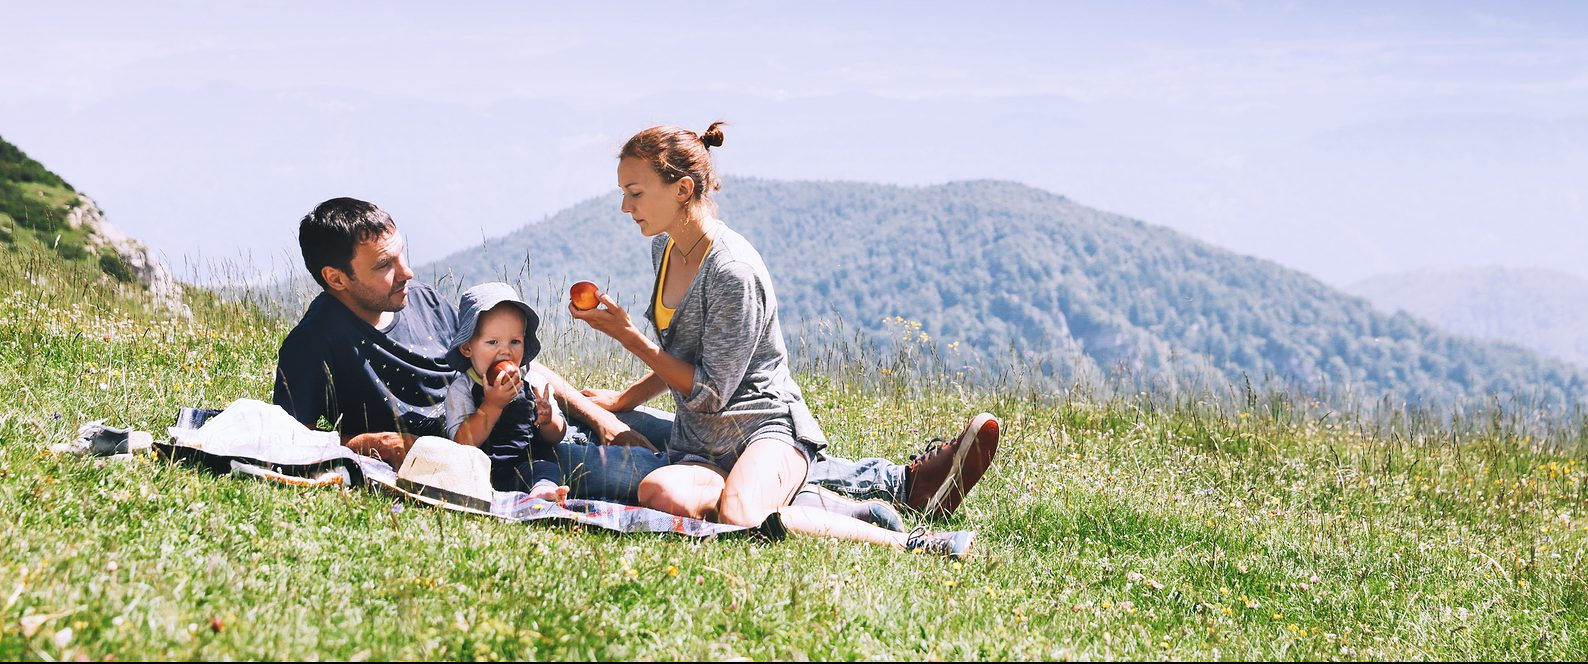 We're sharing some of the world's best picnic spots for families, and they are spectacular!